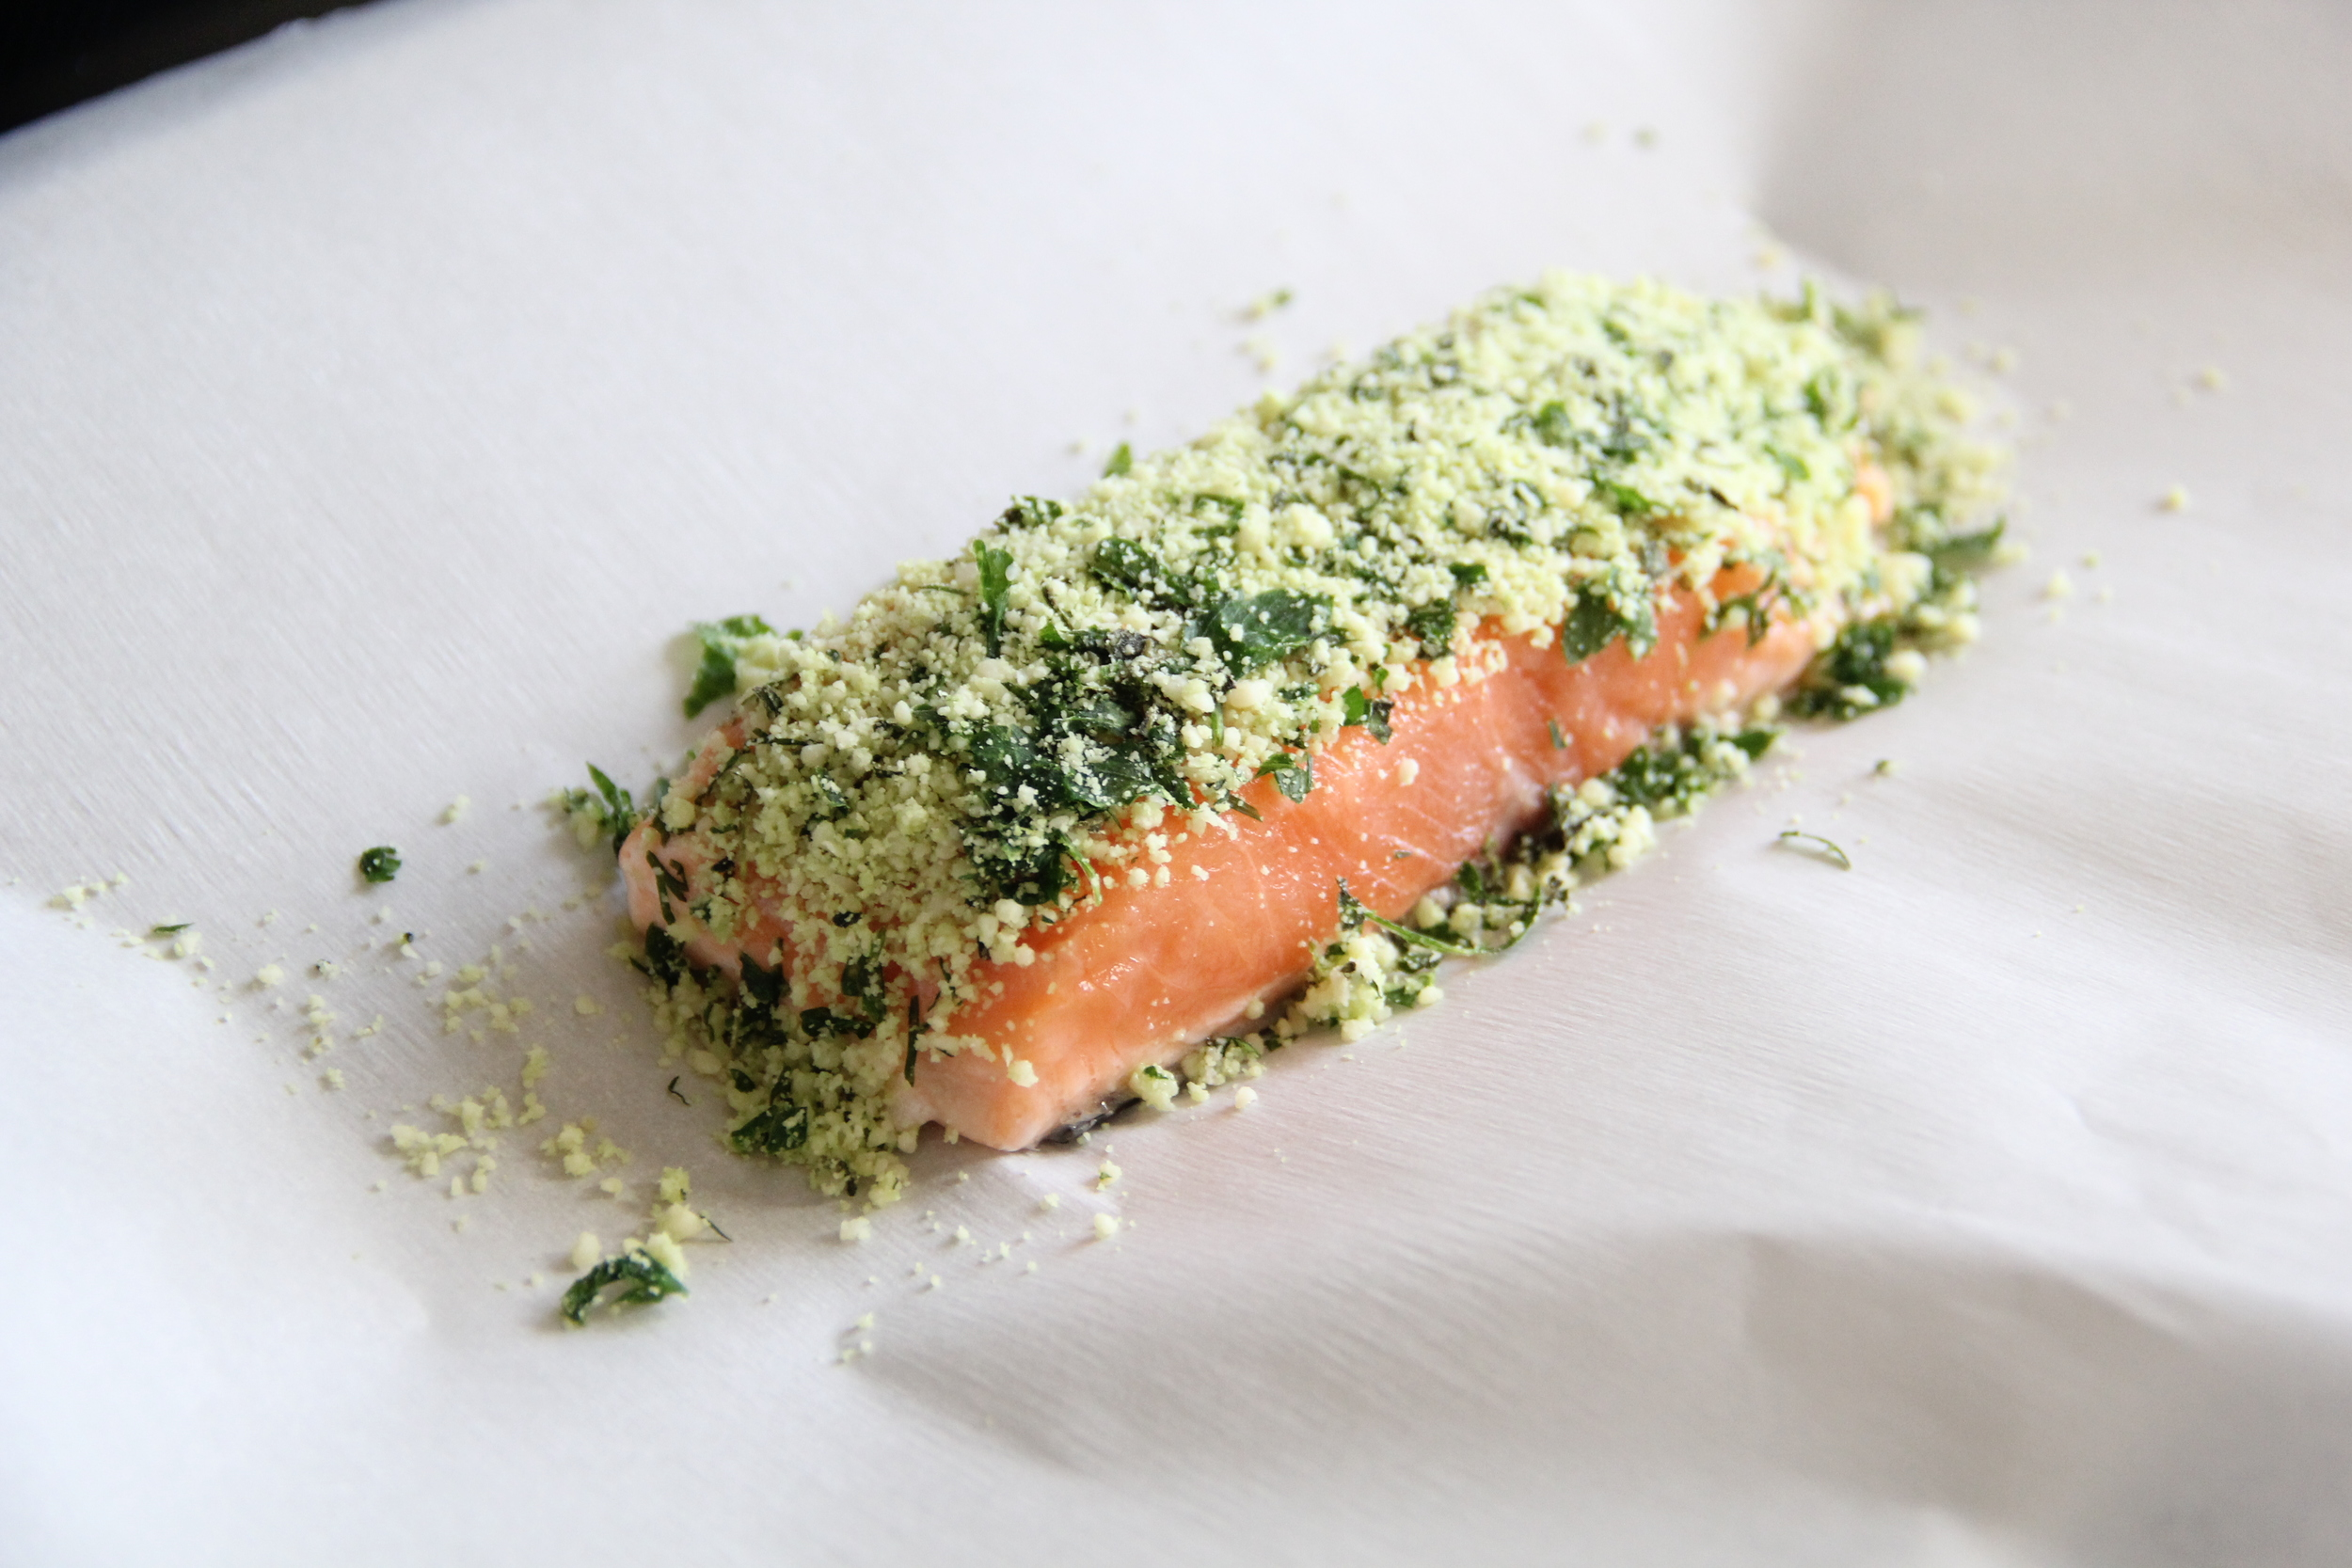 Raw Salmon Filet.JPG